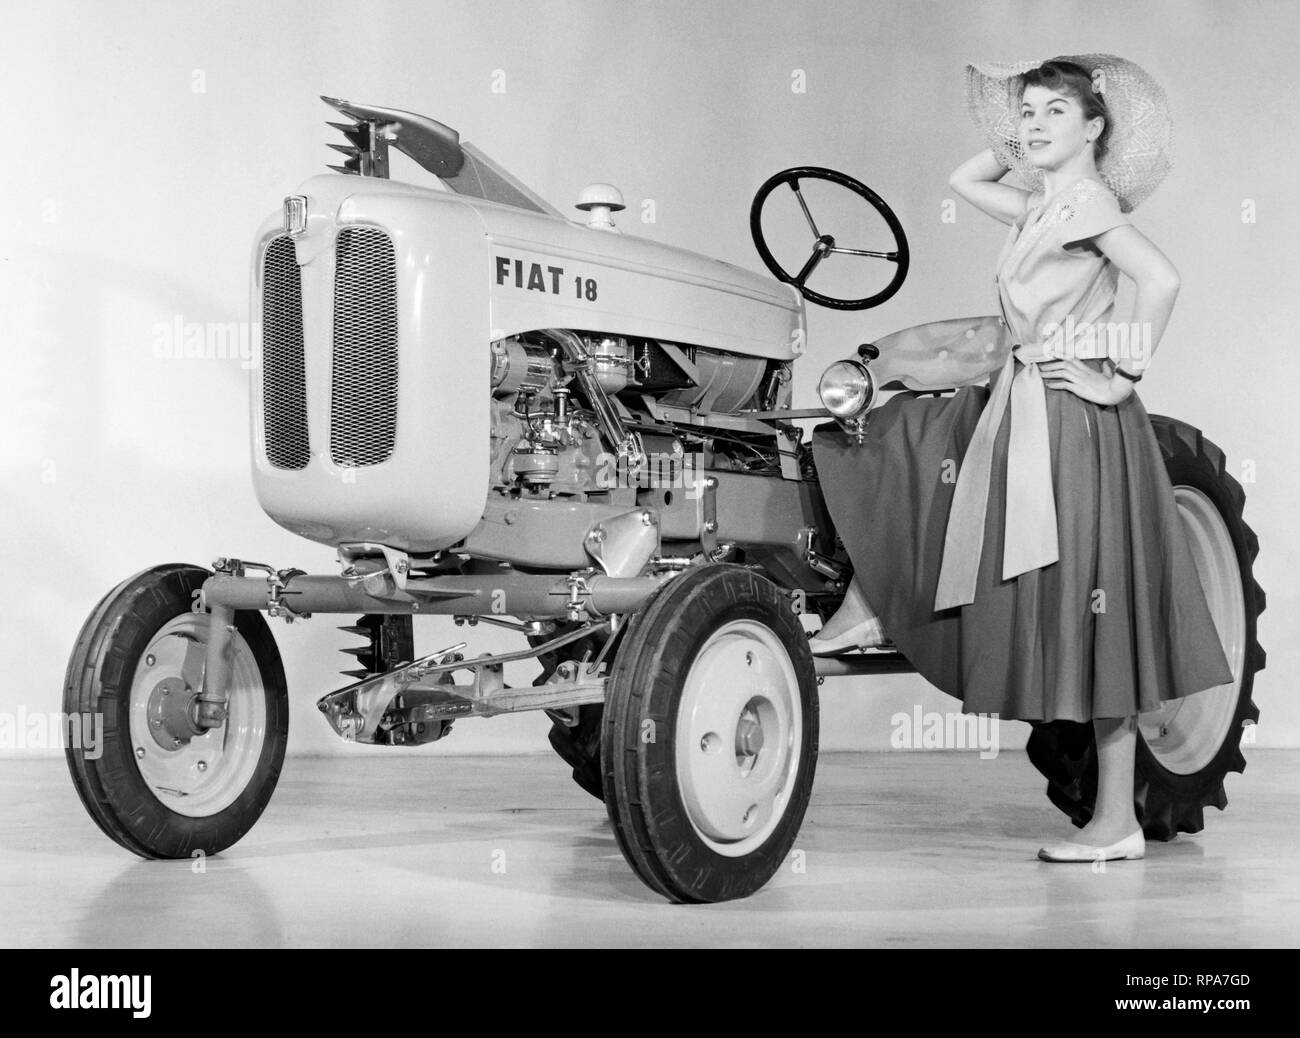 fiat tractor and model, 1957 - Stock Image